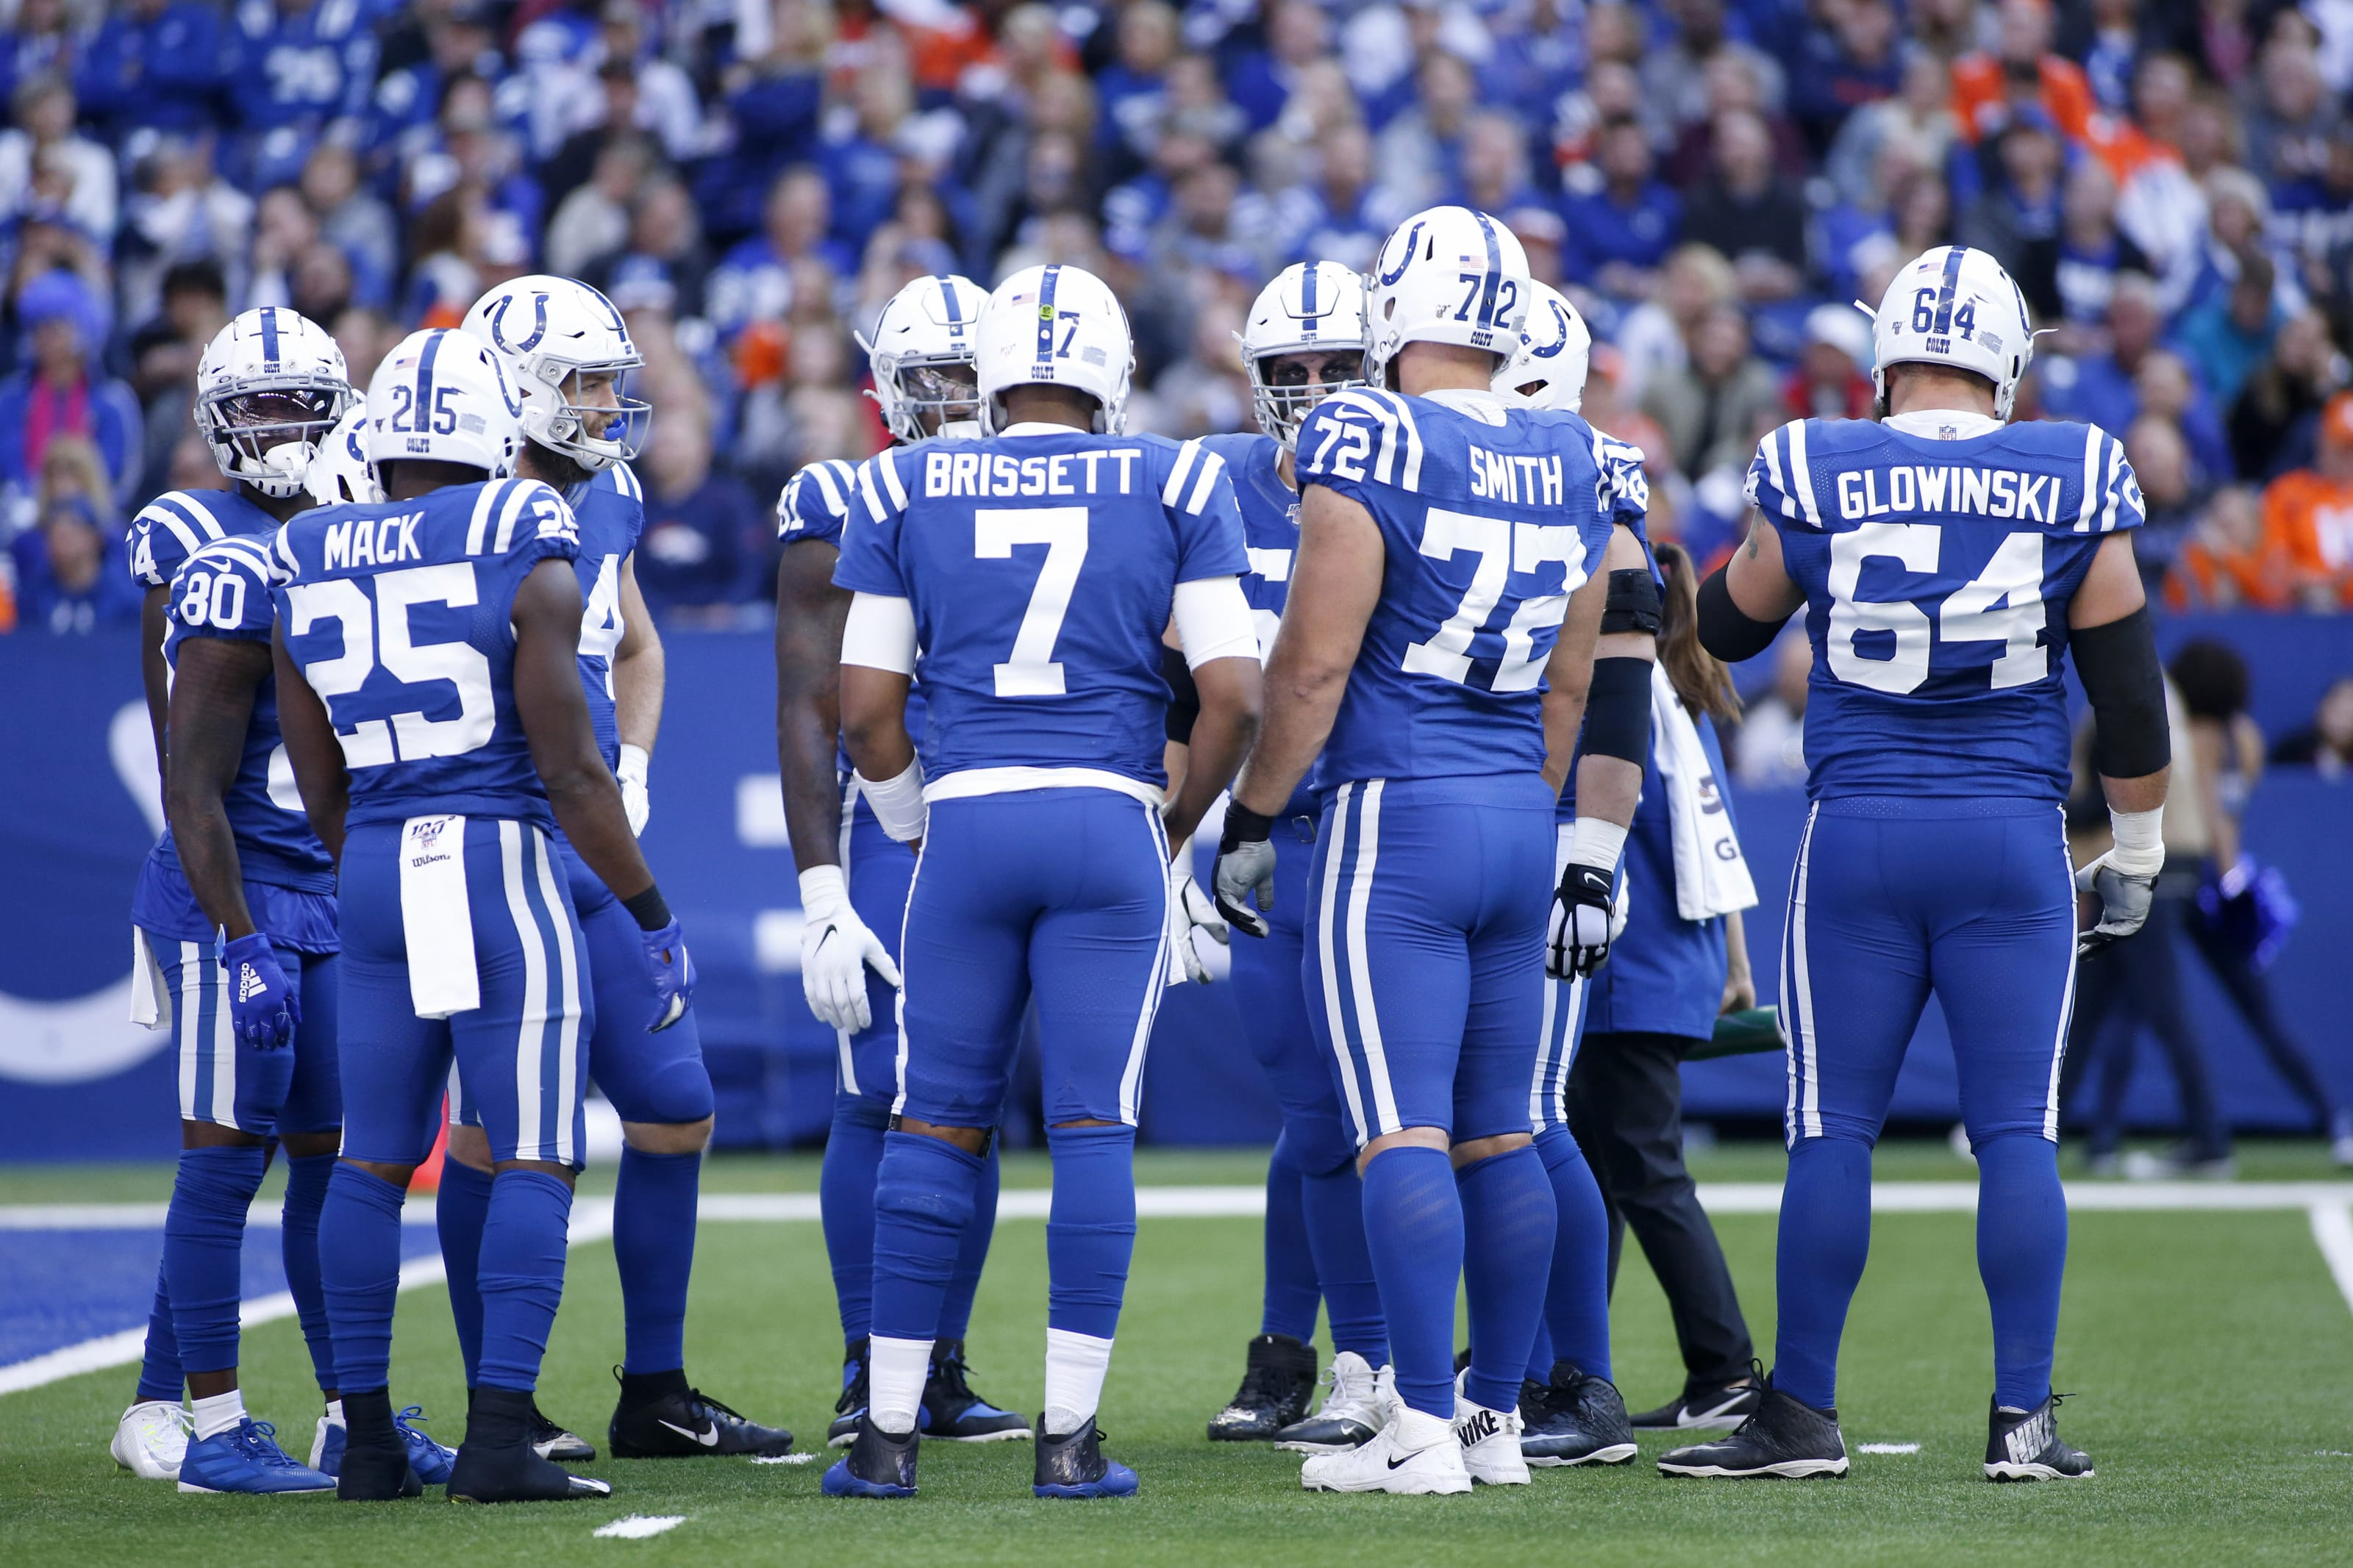 NFL Uniforms: Best combination each team wore in 2019 - Page 3